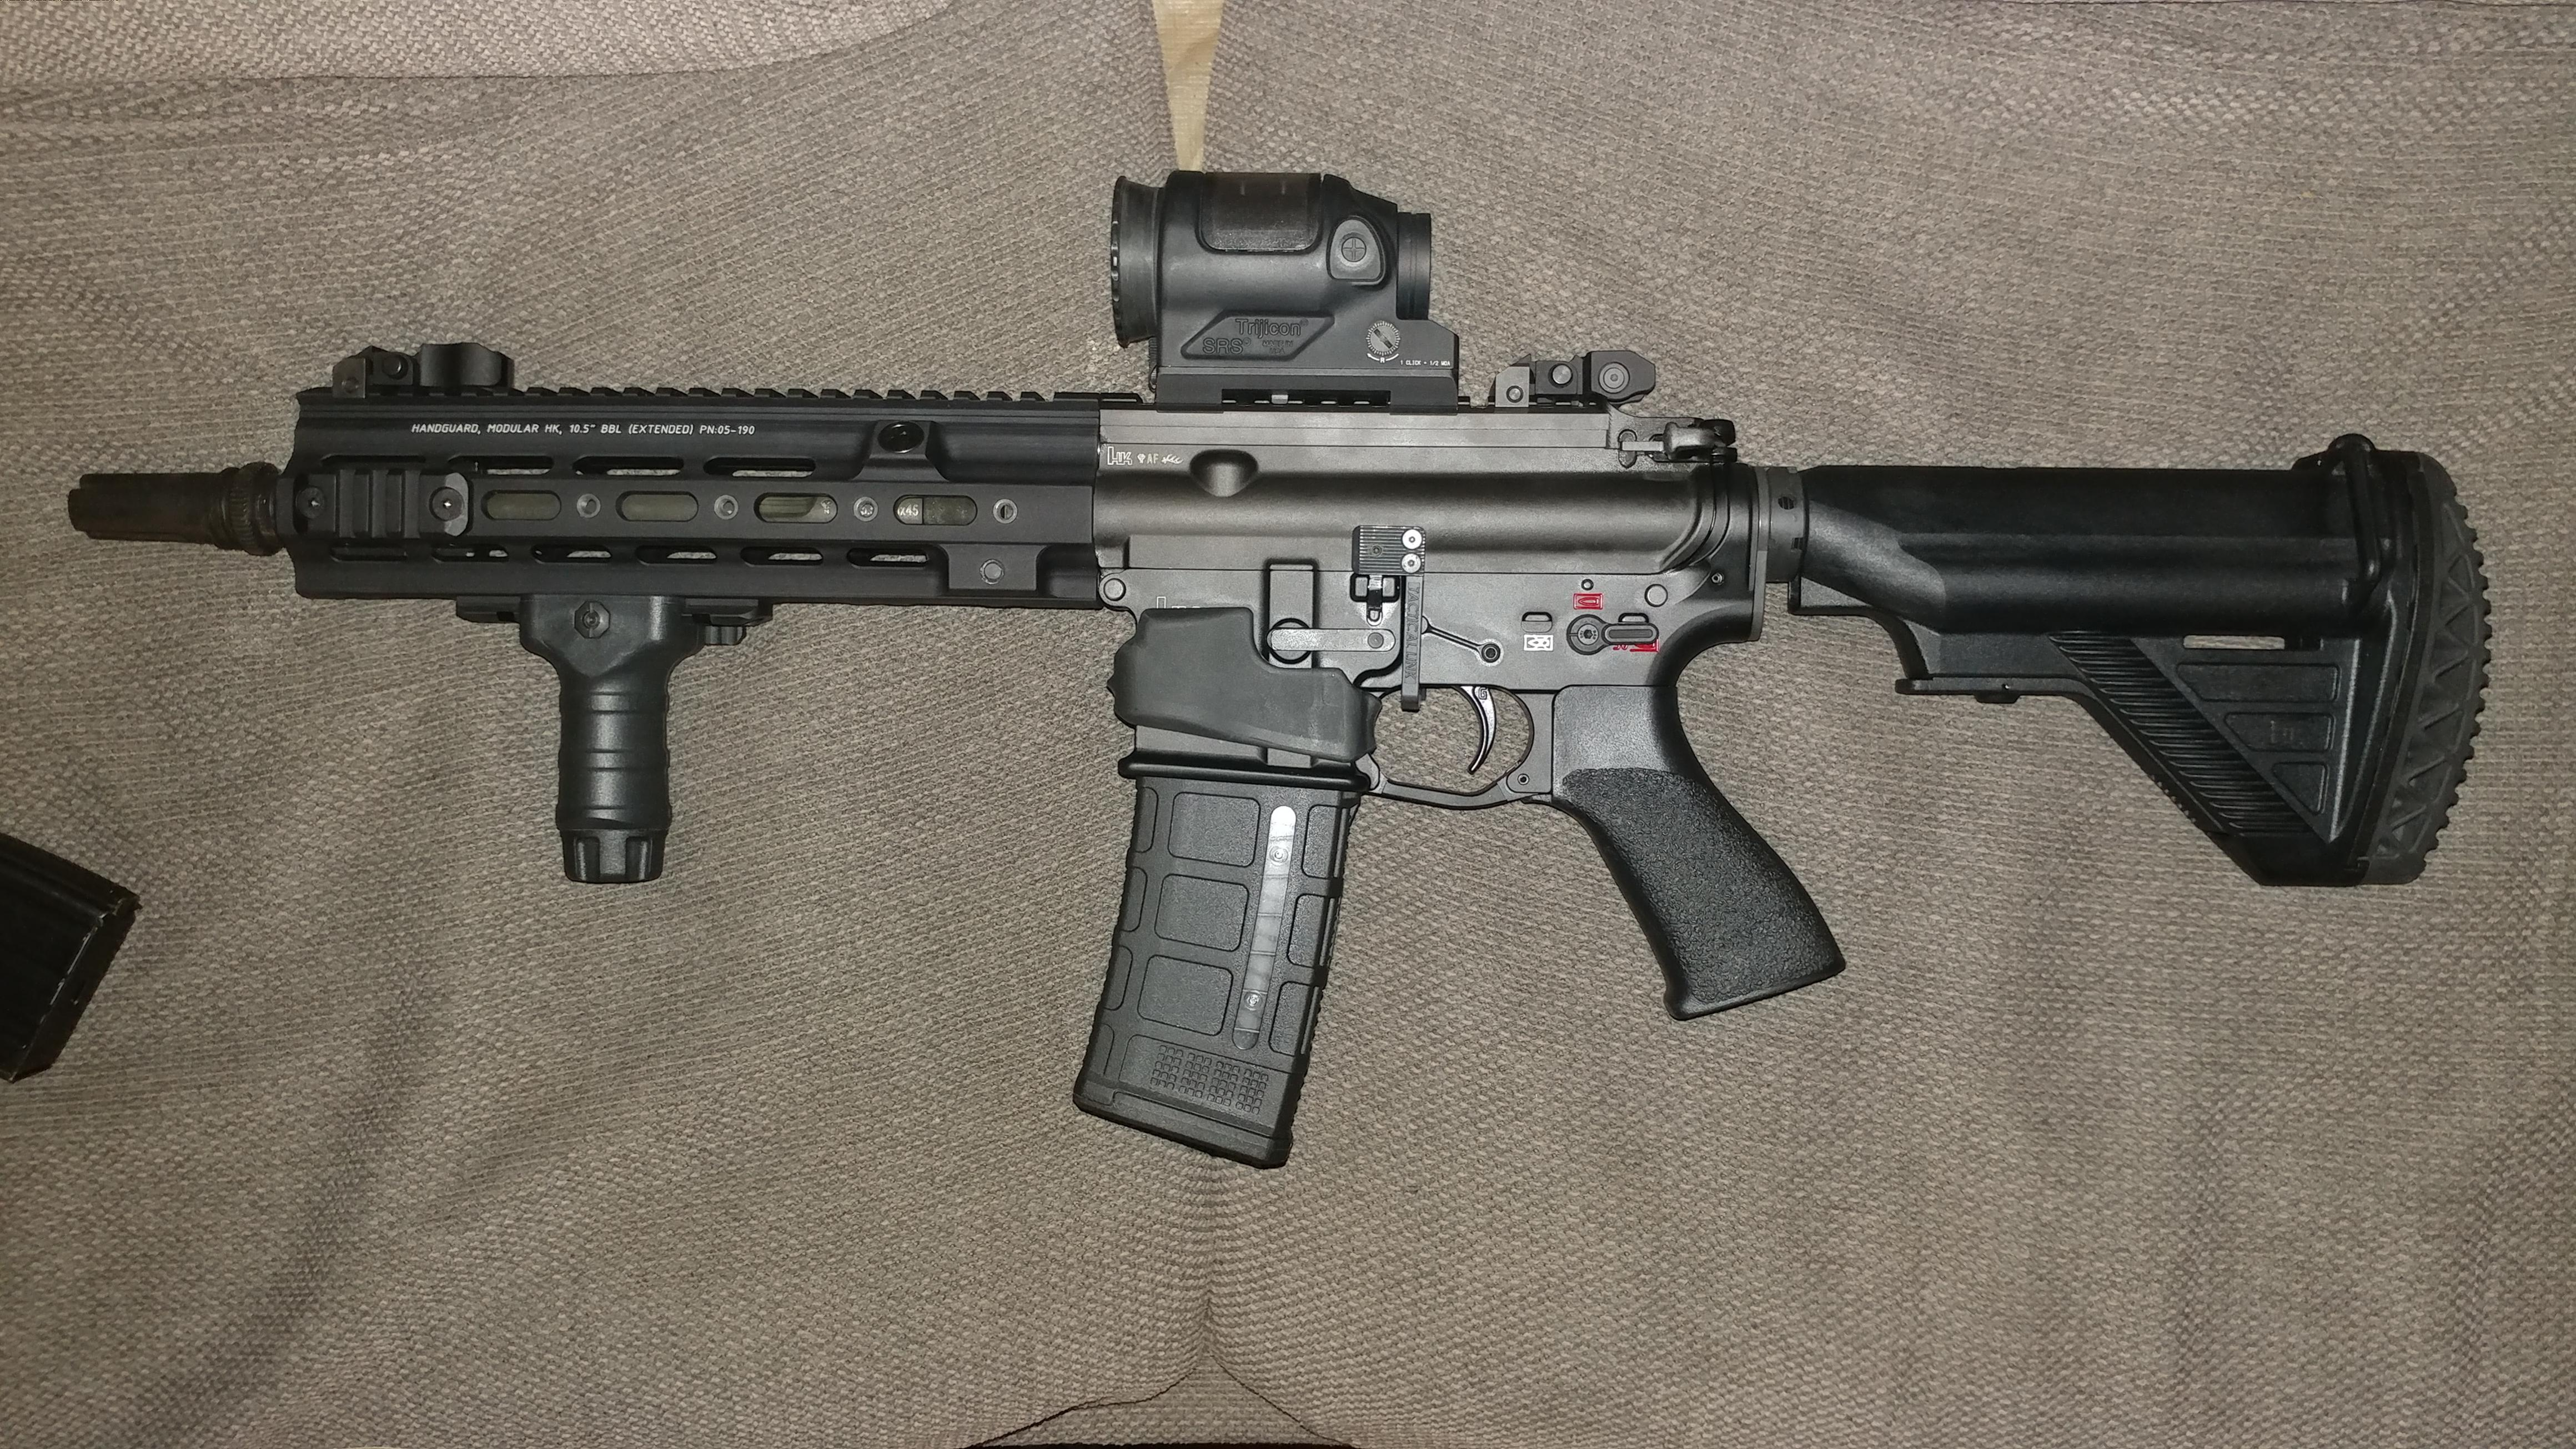 HK416 Owners Picture Thread (genuine HK416's only please)-20180504_033842.jpg